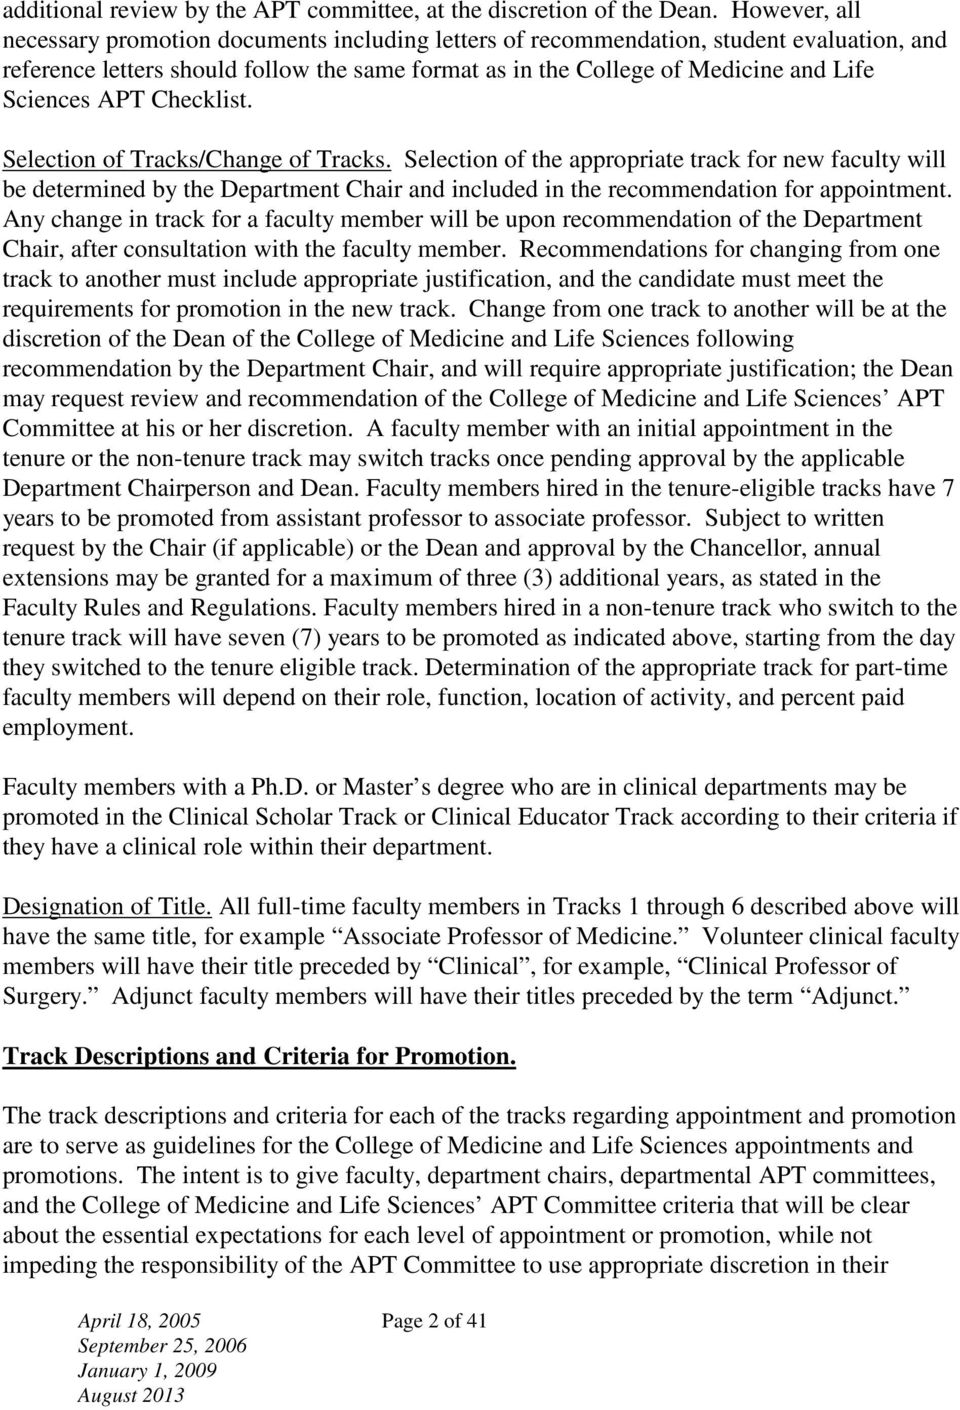 APT Checklist. Selection of Tracks/Change of Tracks. Selection of the appropriate track for new faculty will be determined by the Department Chair and included in the recommendation for appointment.